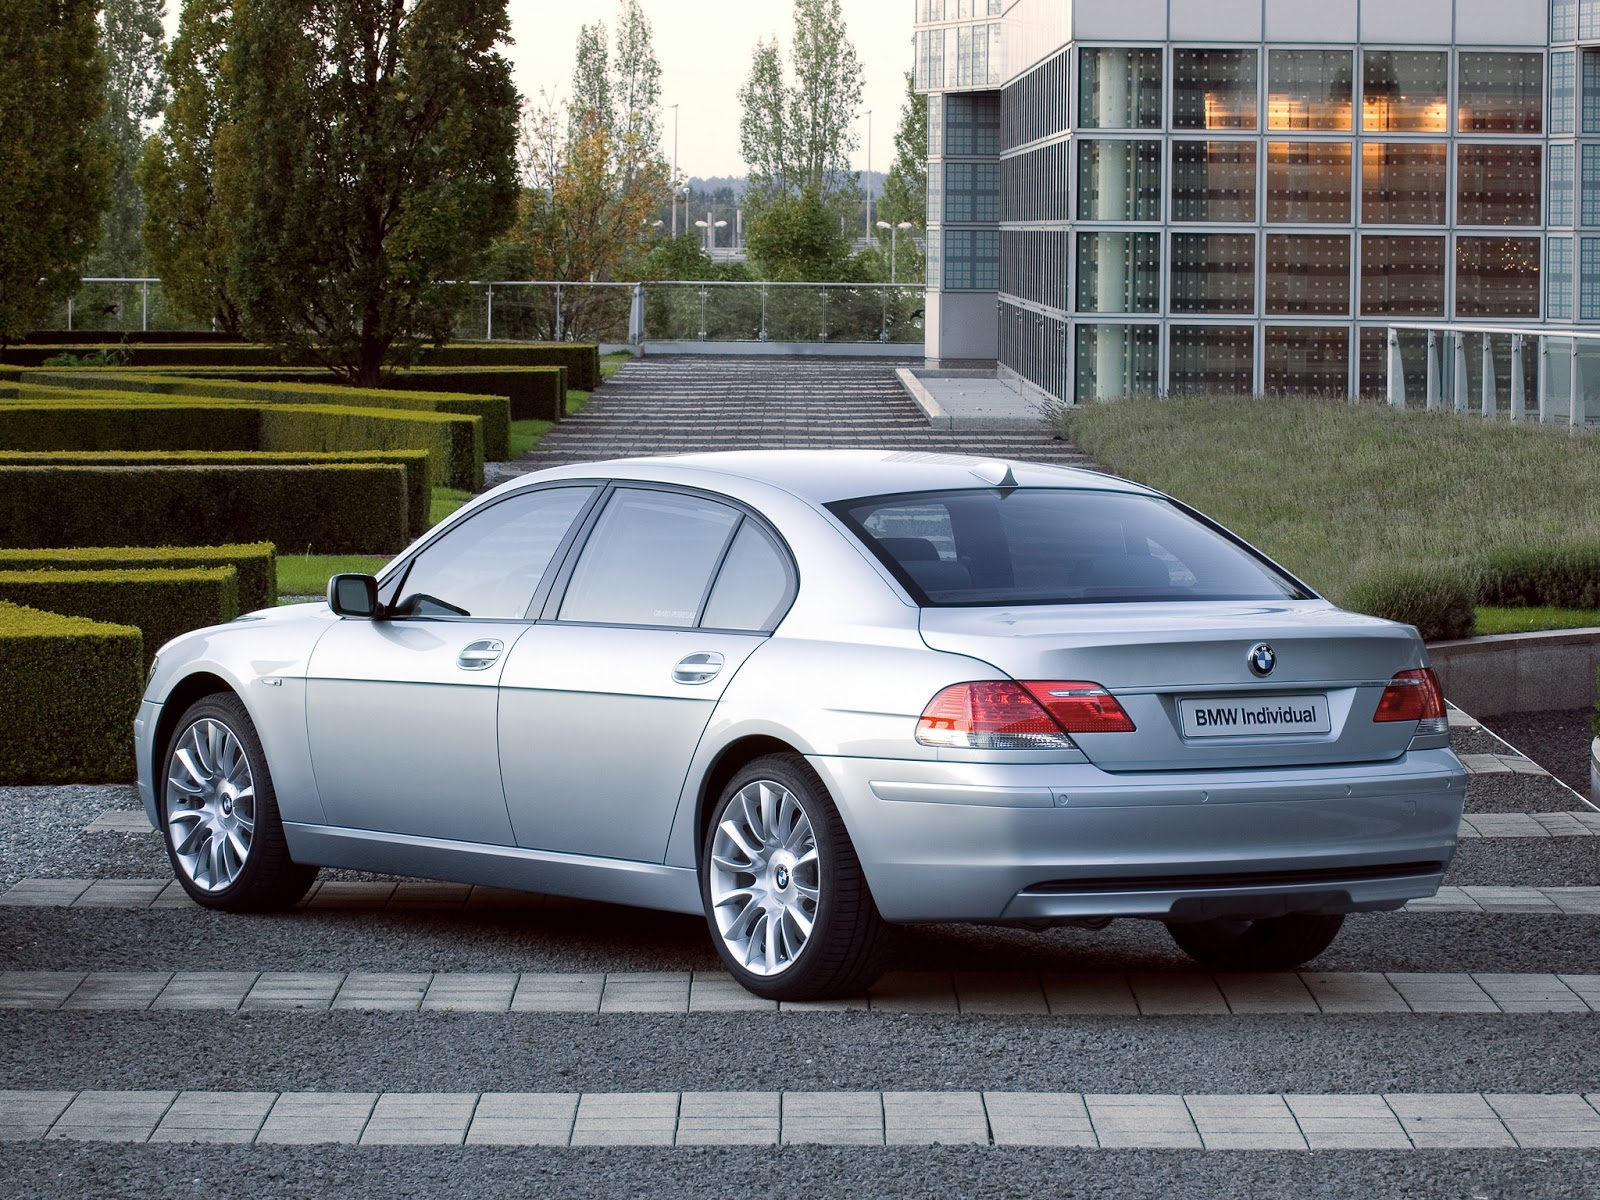 E65 Is The Internal Model Designation For 7 Series